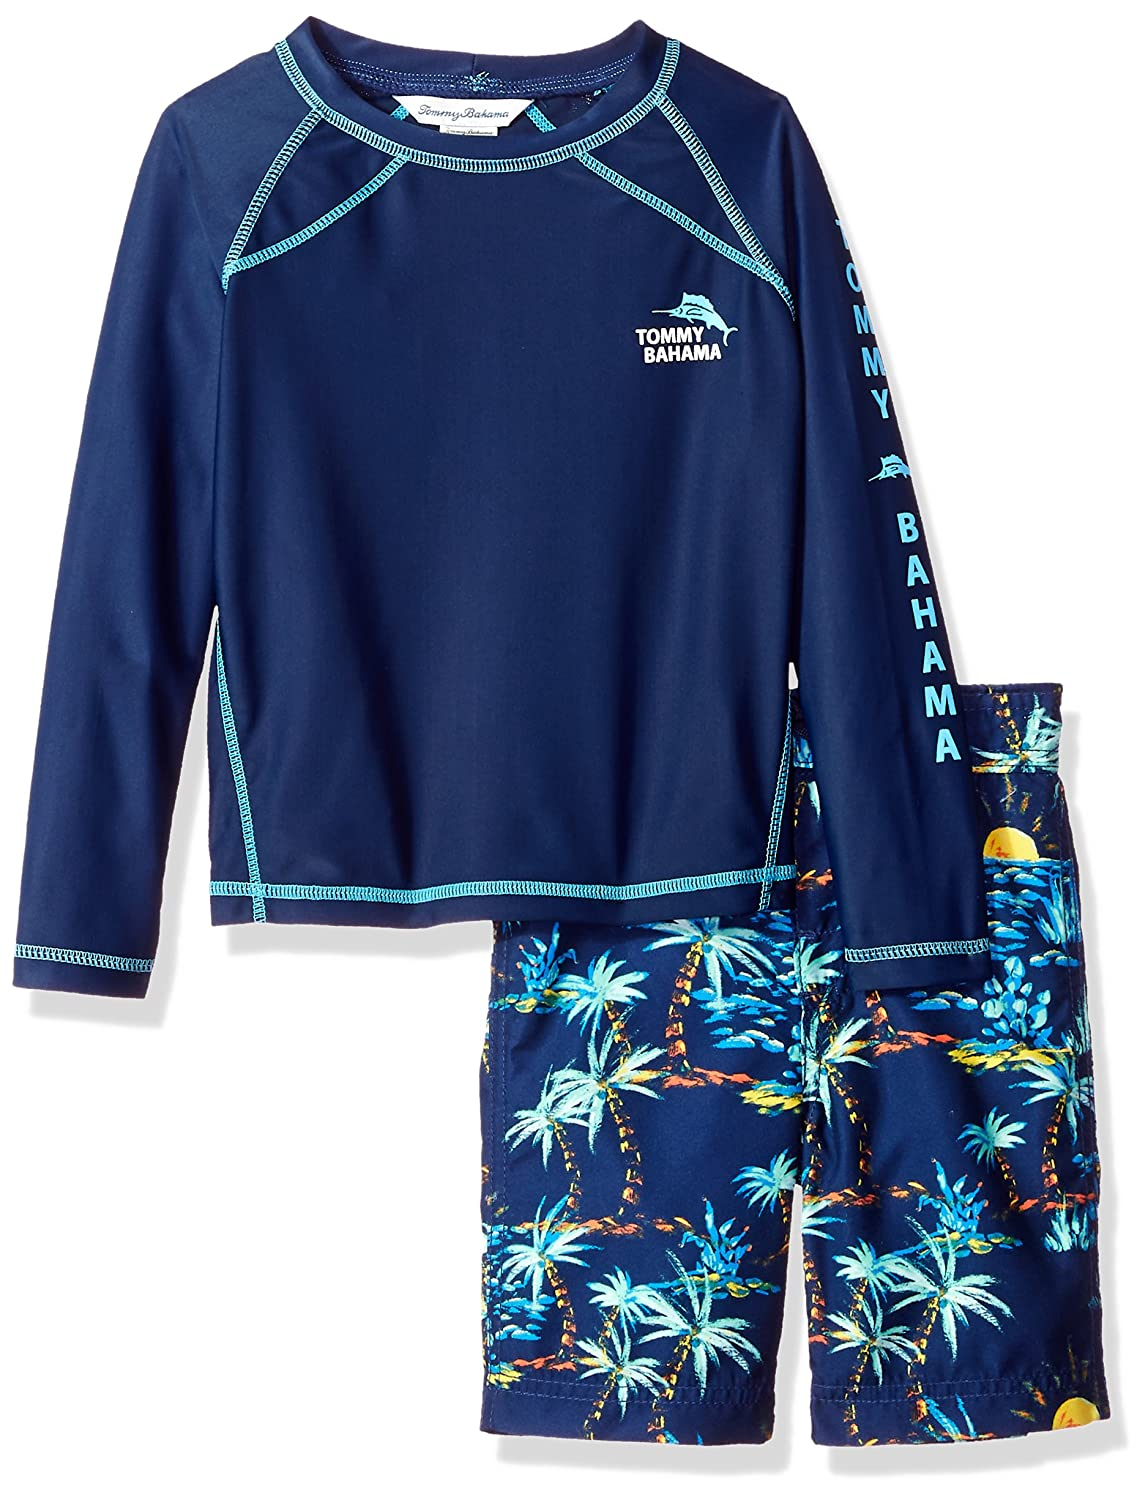 Tommy Bahama Boys' Little Rashguard and Trunks Swimsuit Set